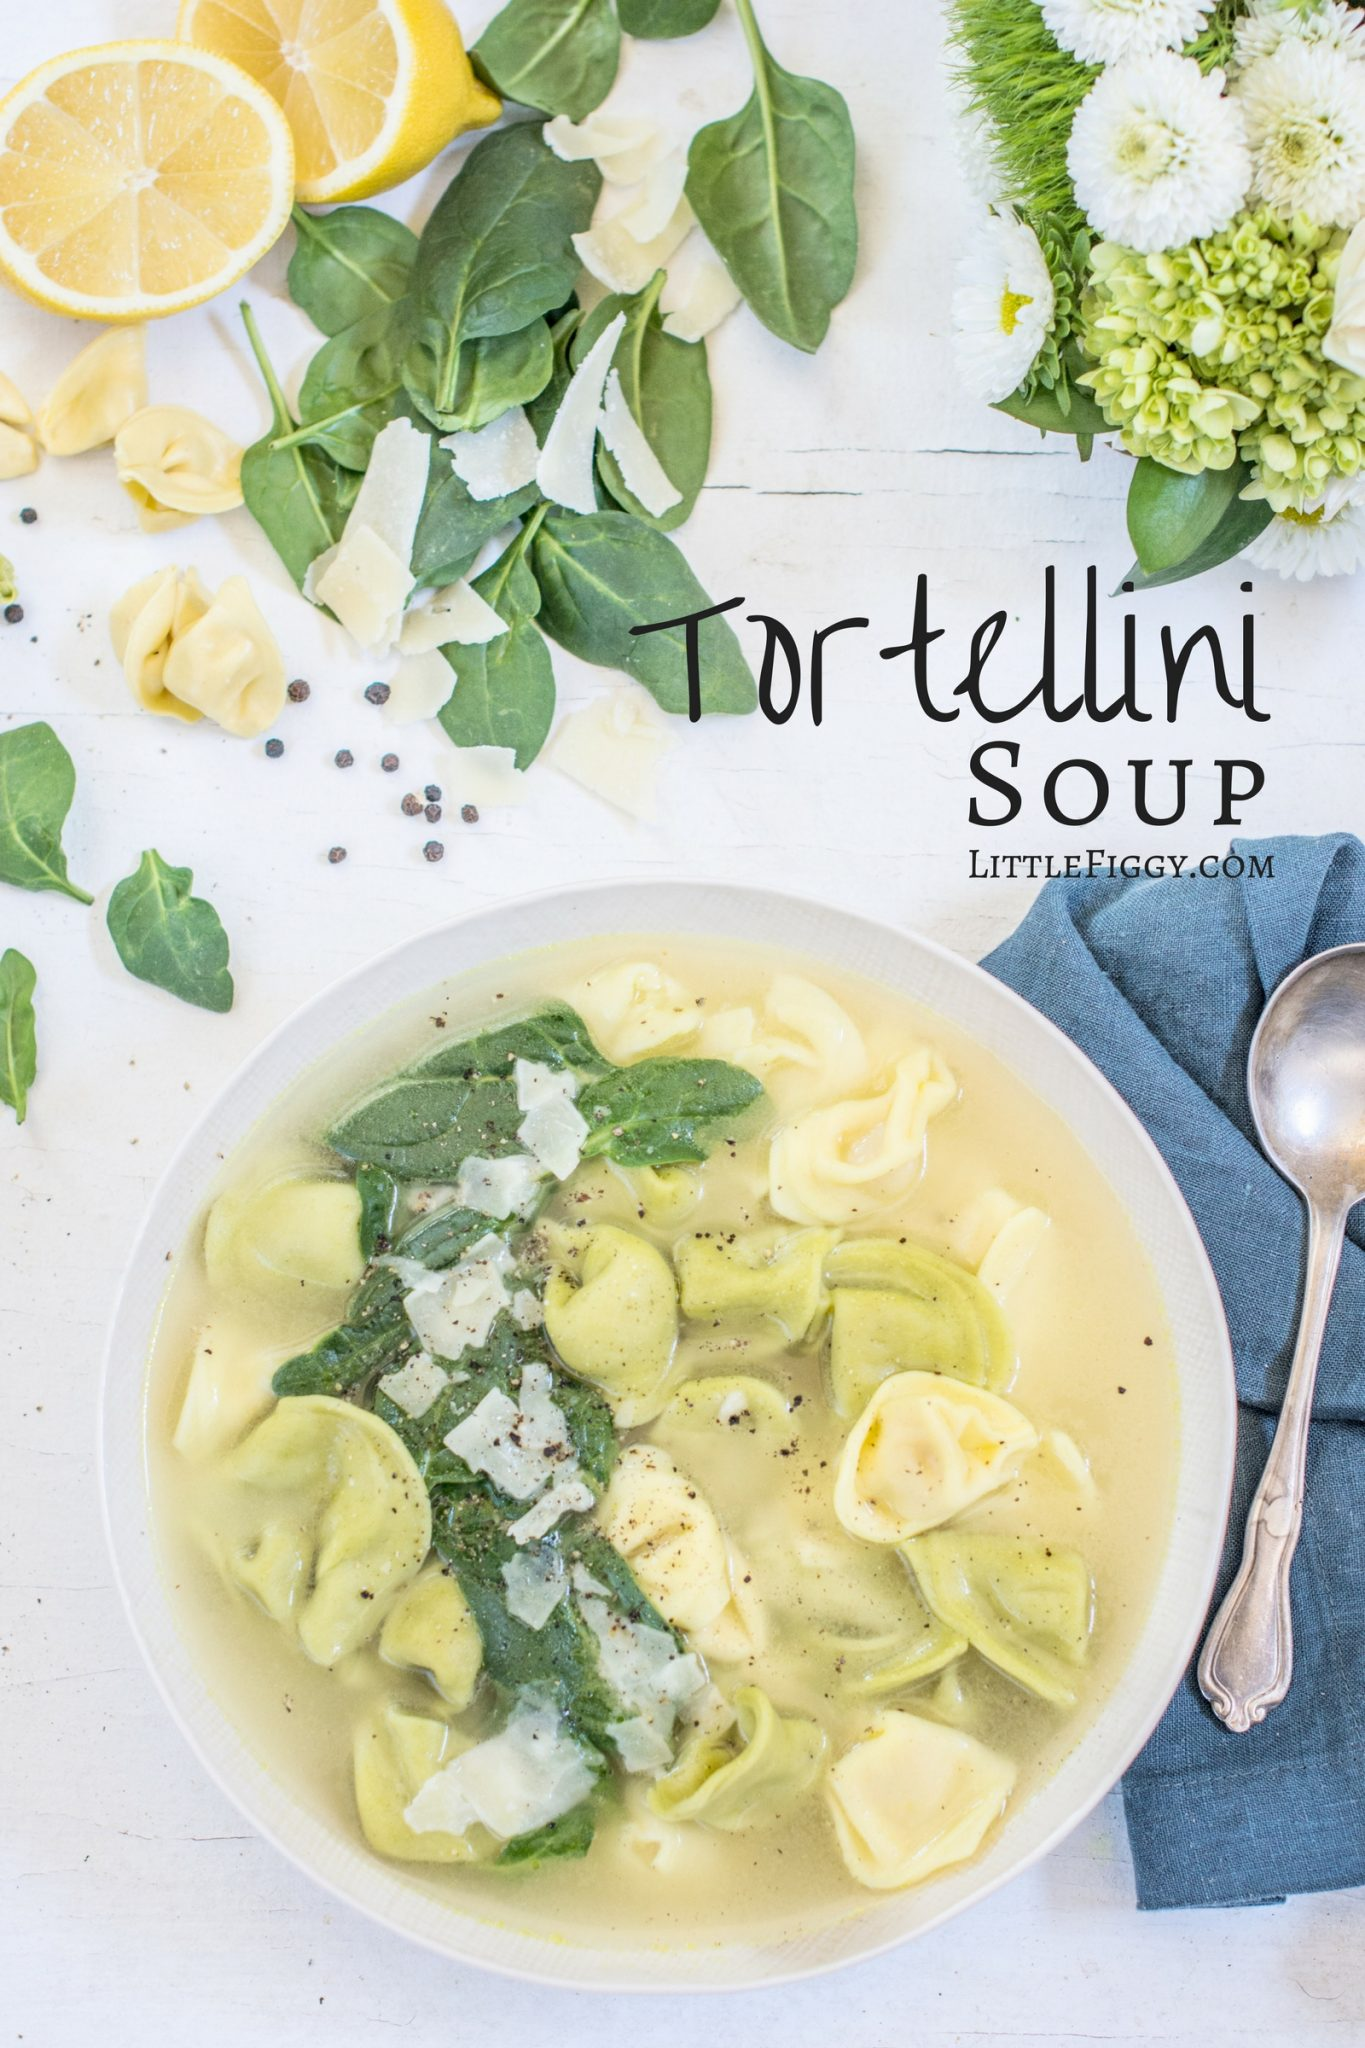 Tortellini Soup with spinach and a hint of lemon. Get the recipe at Little Figgy Food.